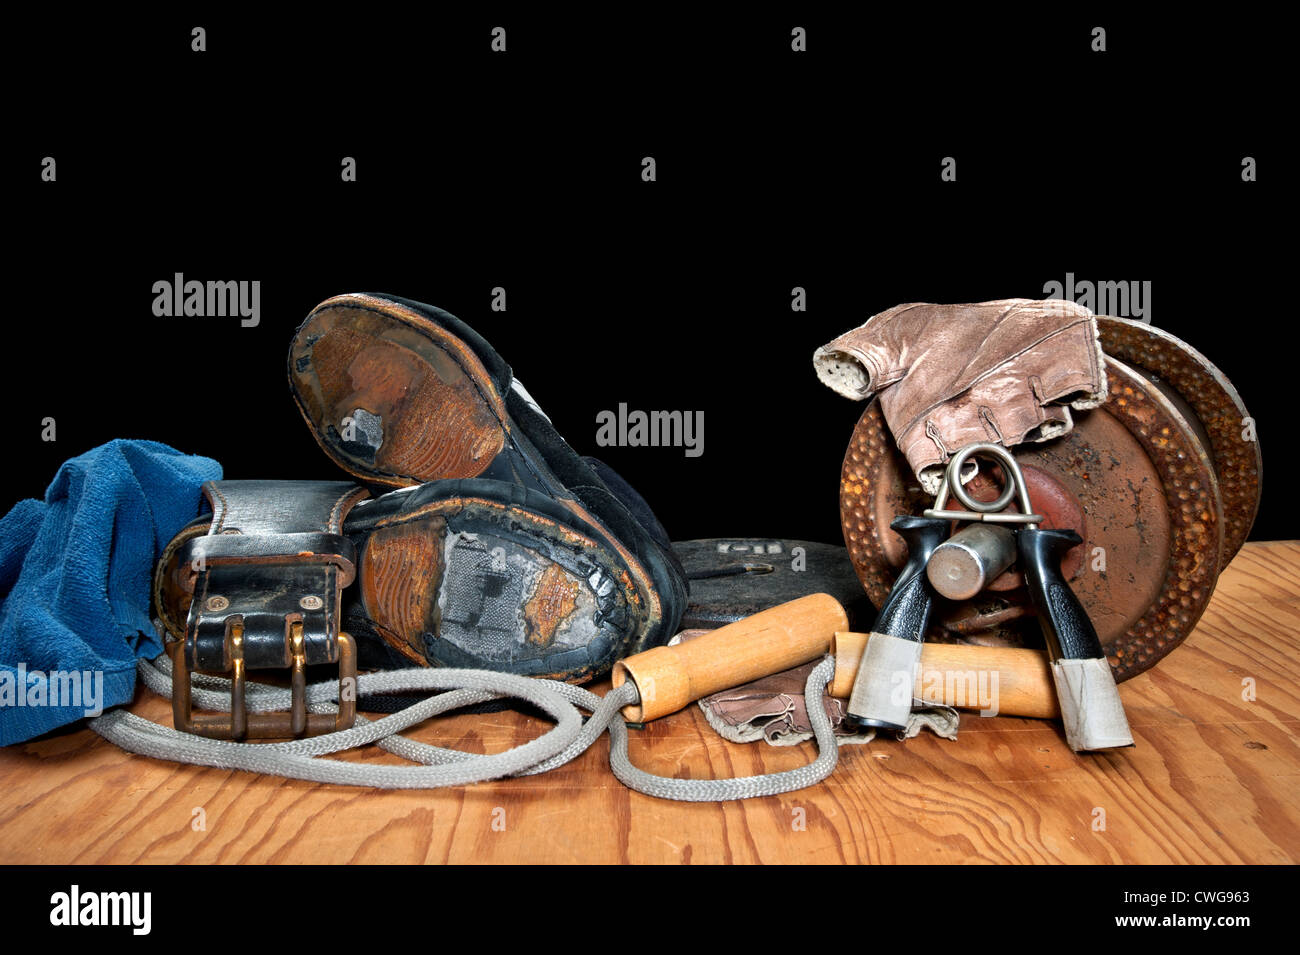 A collection of old exercise equipment including hand grips, dumbell, jump rope and old, torn weightlifting shoes. - Stock Image